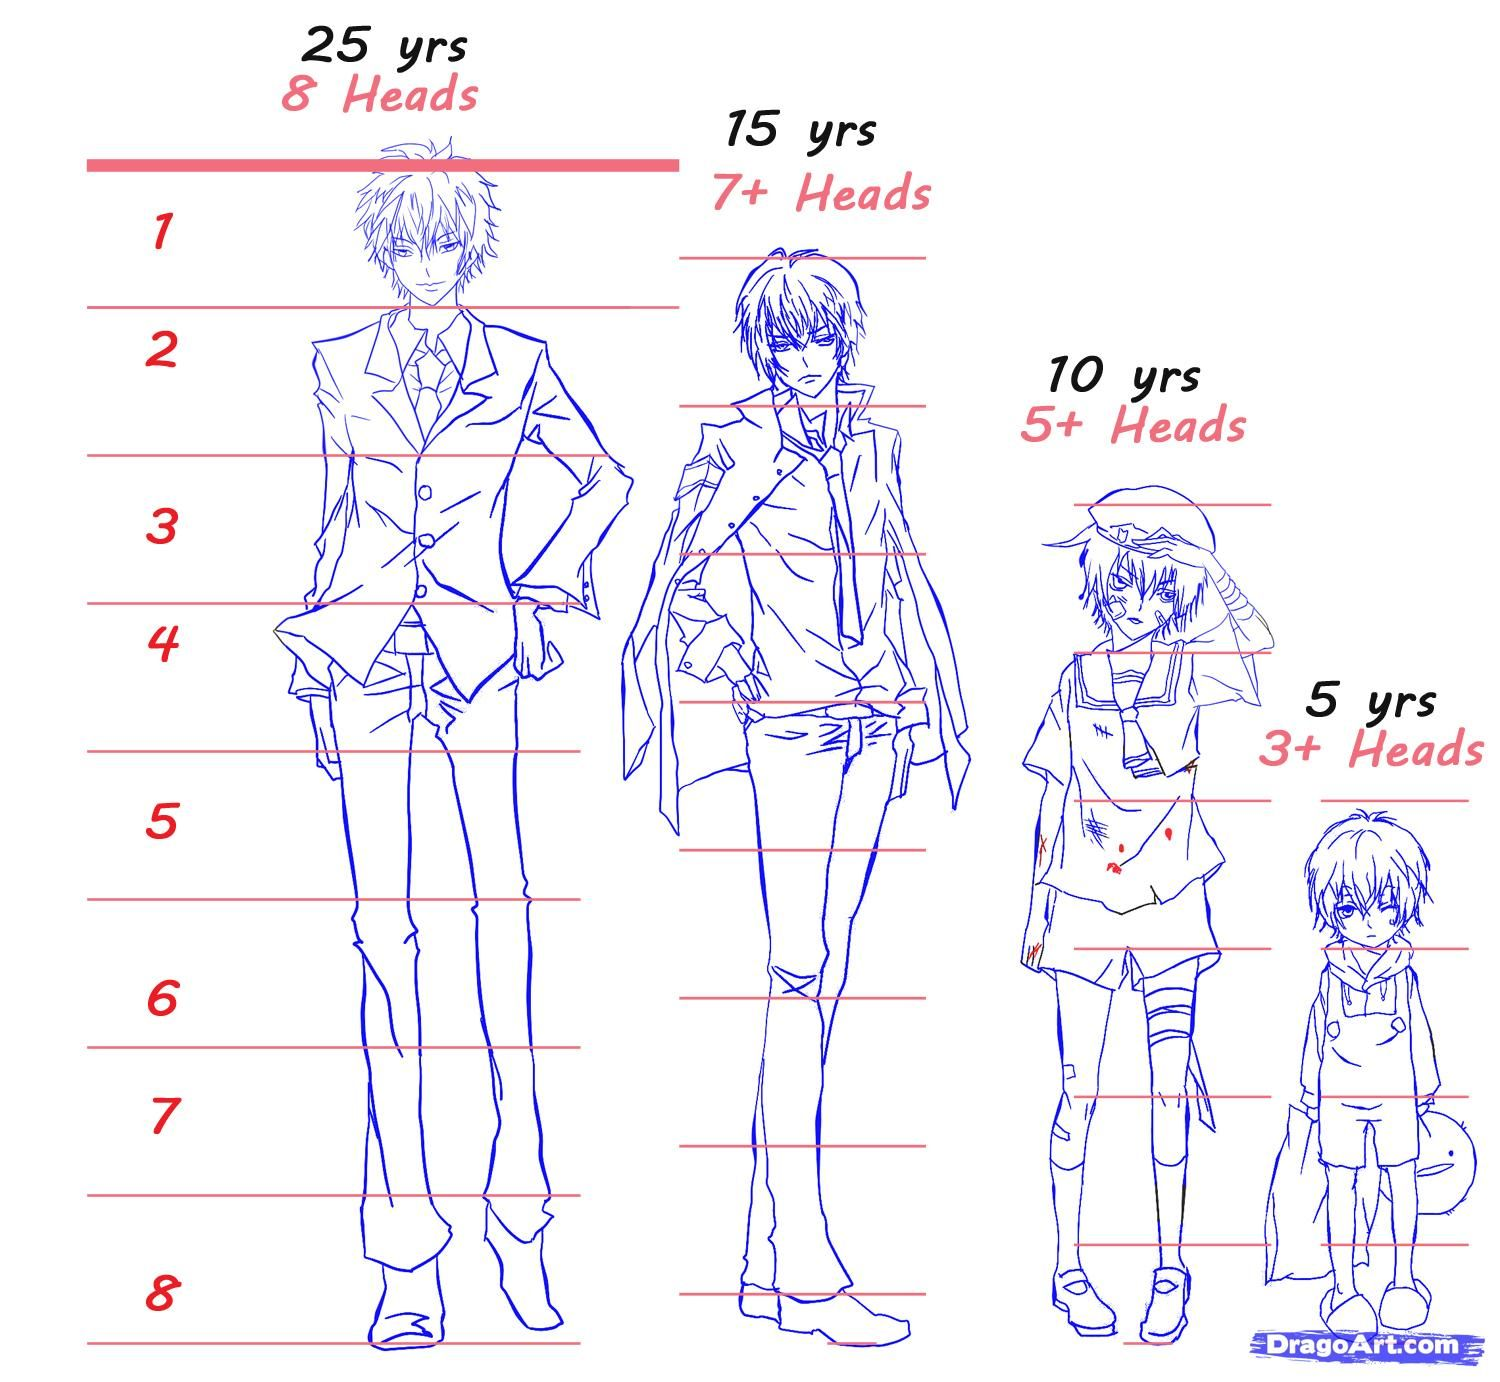 How to Sketch an Anime Boy, Step by Step, Anime People